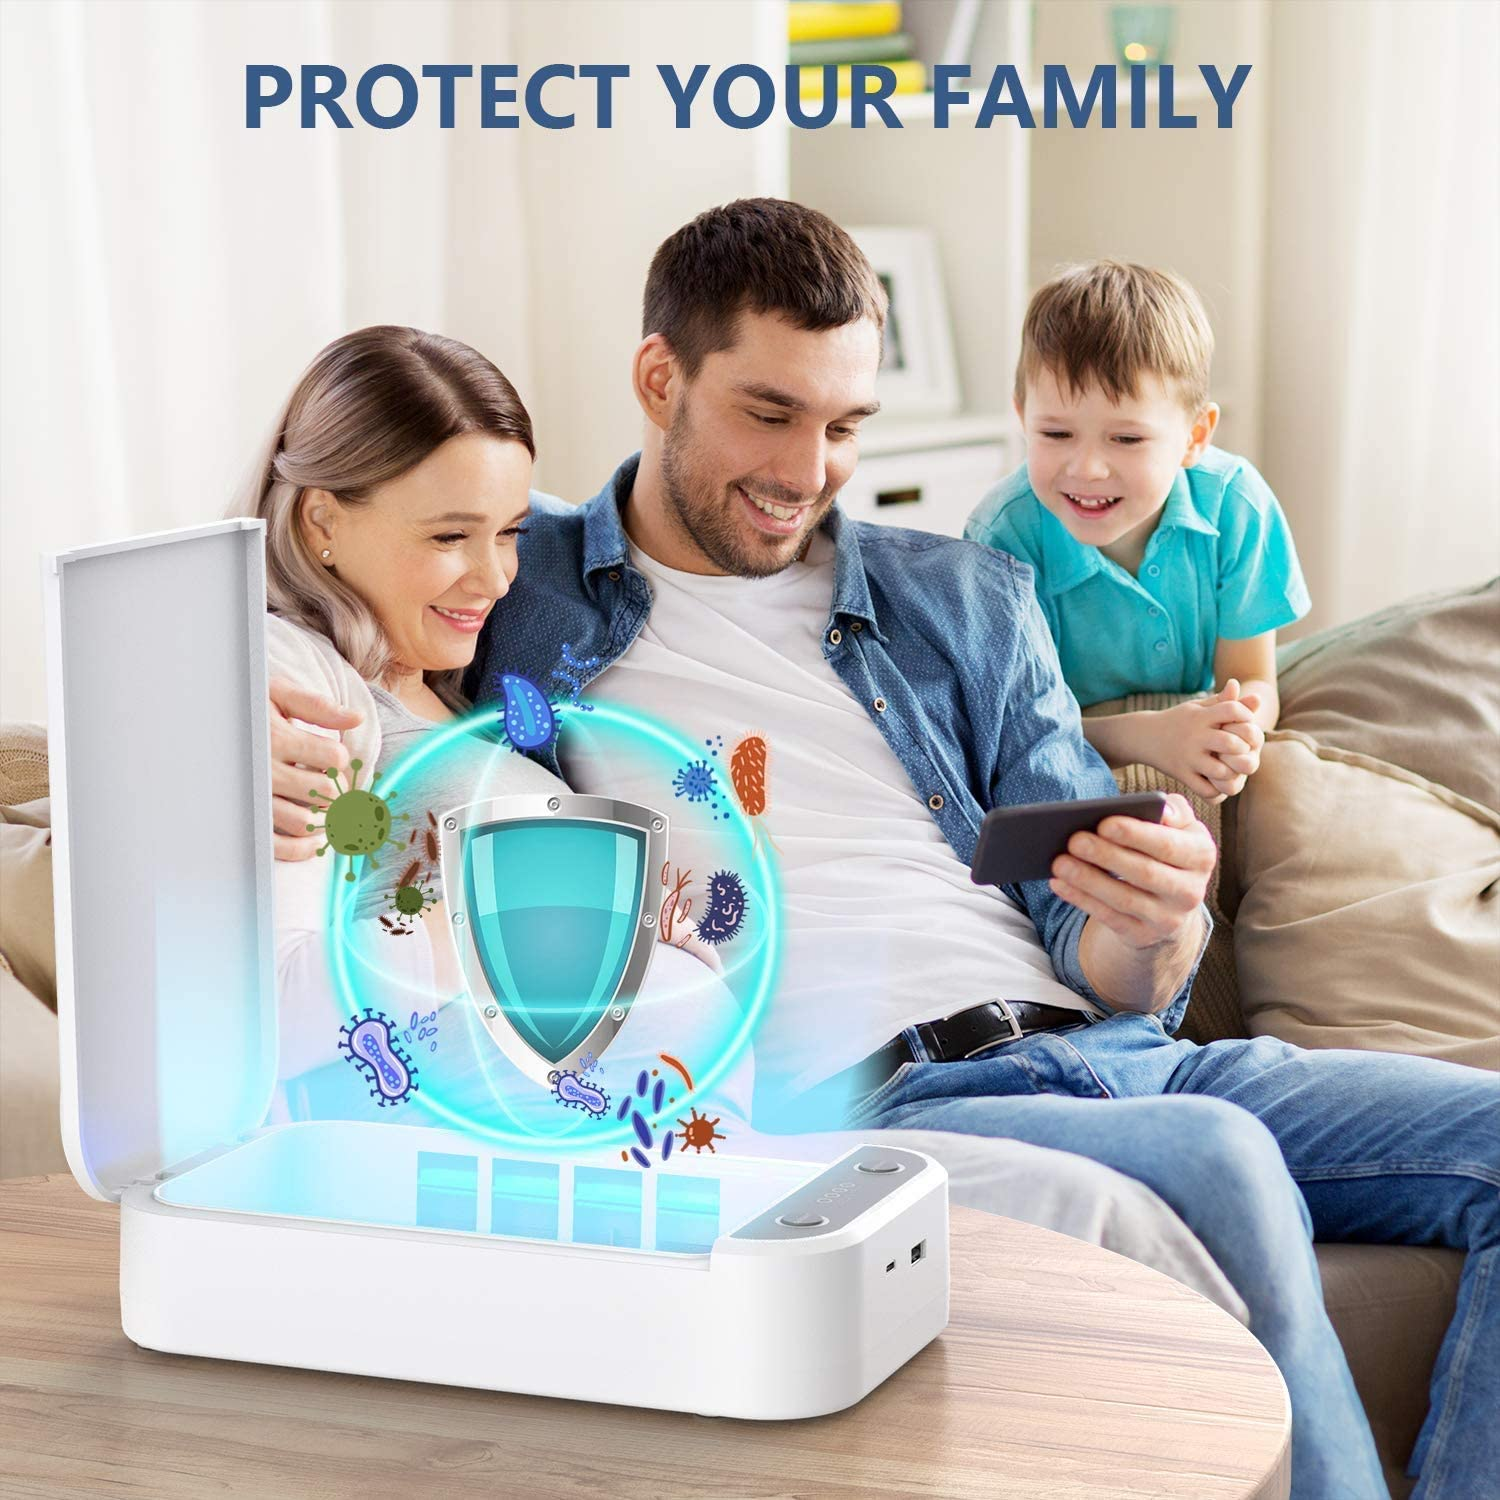 UV Cell Phone Sanitizer for iPhone Sterilizer Phone Cleaner for iOS Android Mobile Phone Toothbrush Pacifier Aromatherapy Function Disinfector